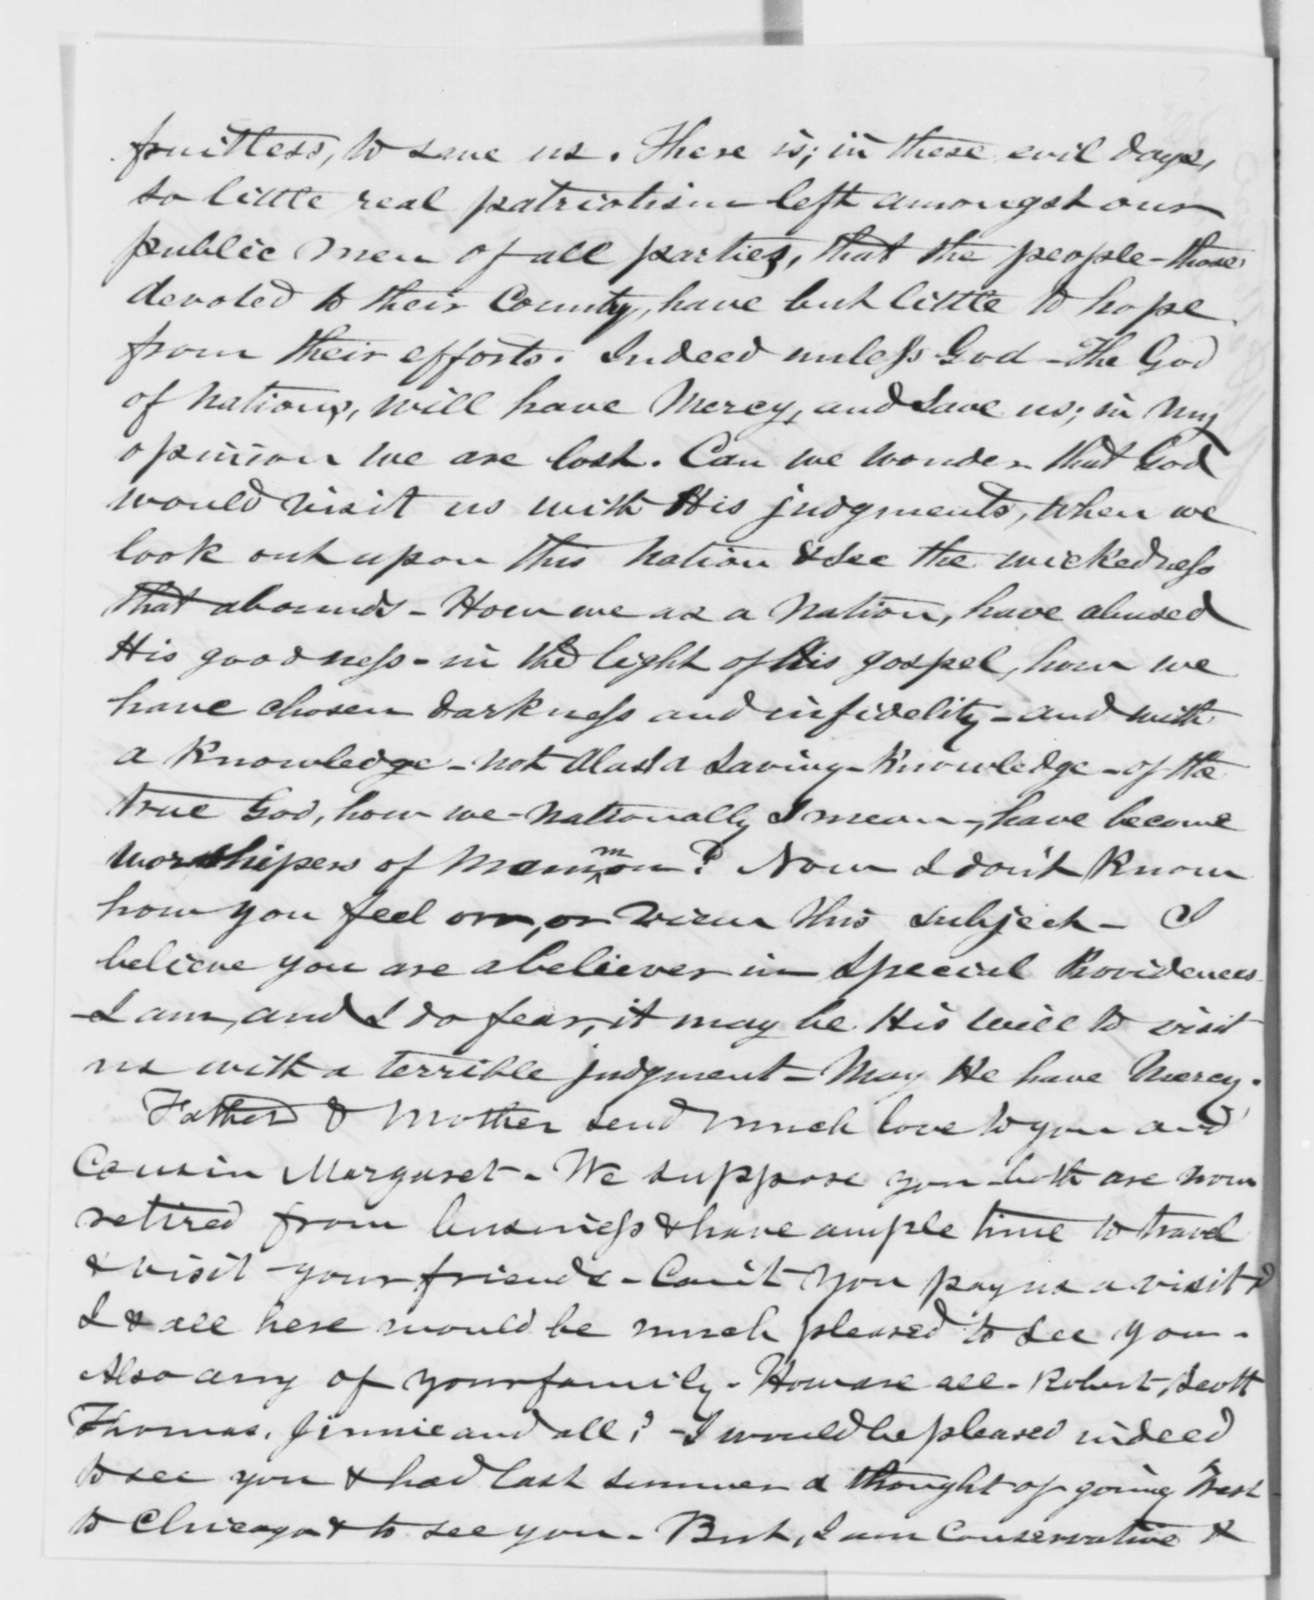 D. W. Patterson to Robert Officer, Friday, January 25, 1861  (Cameron and A. K. McClure)